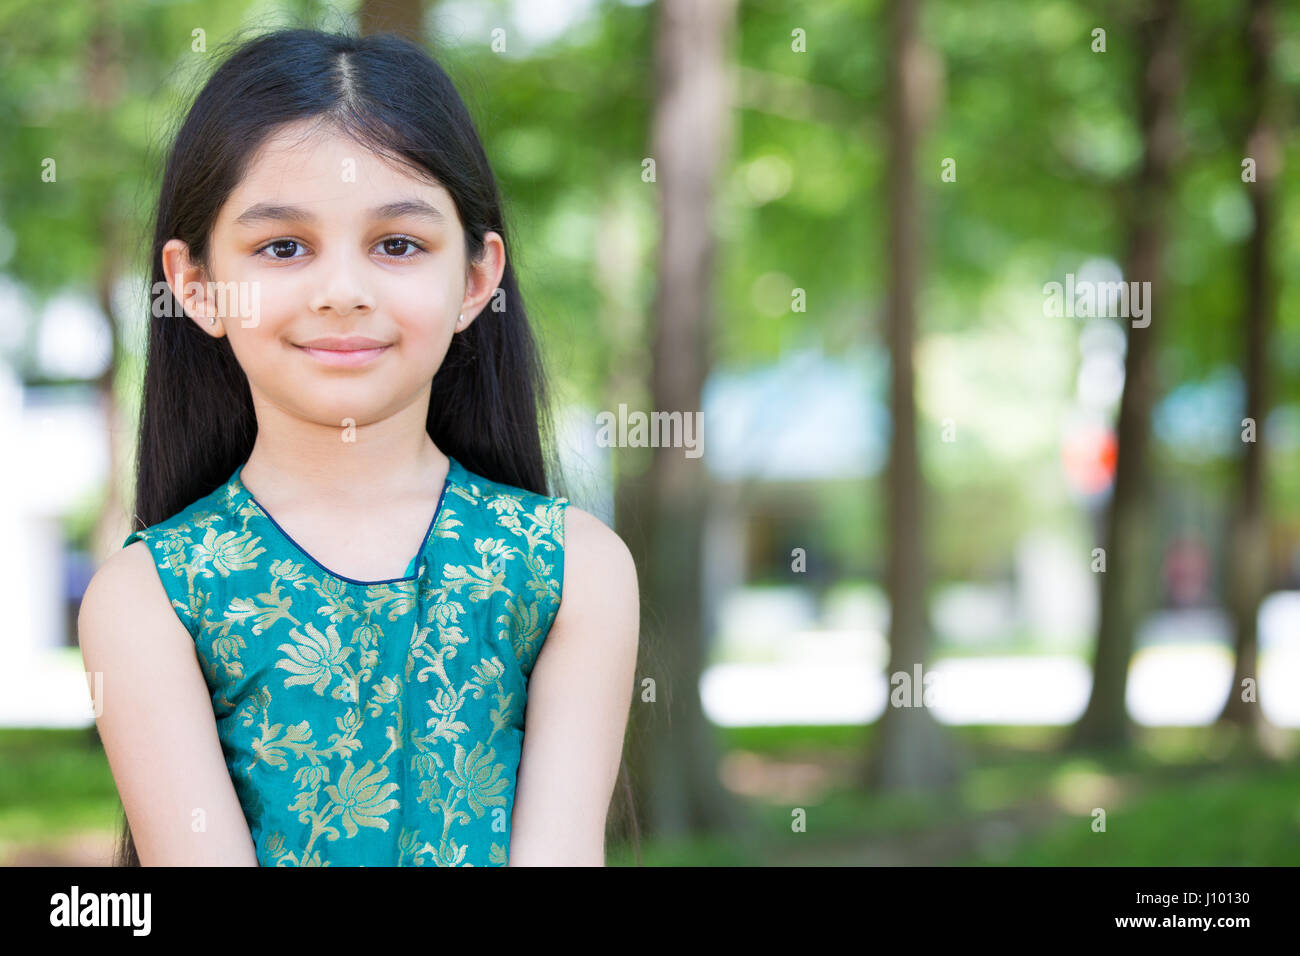 Closeup portrait, young girl standing in forest on sunny day, isolated outside outdoors background - Stock Image